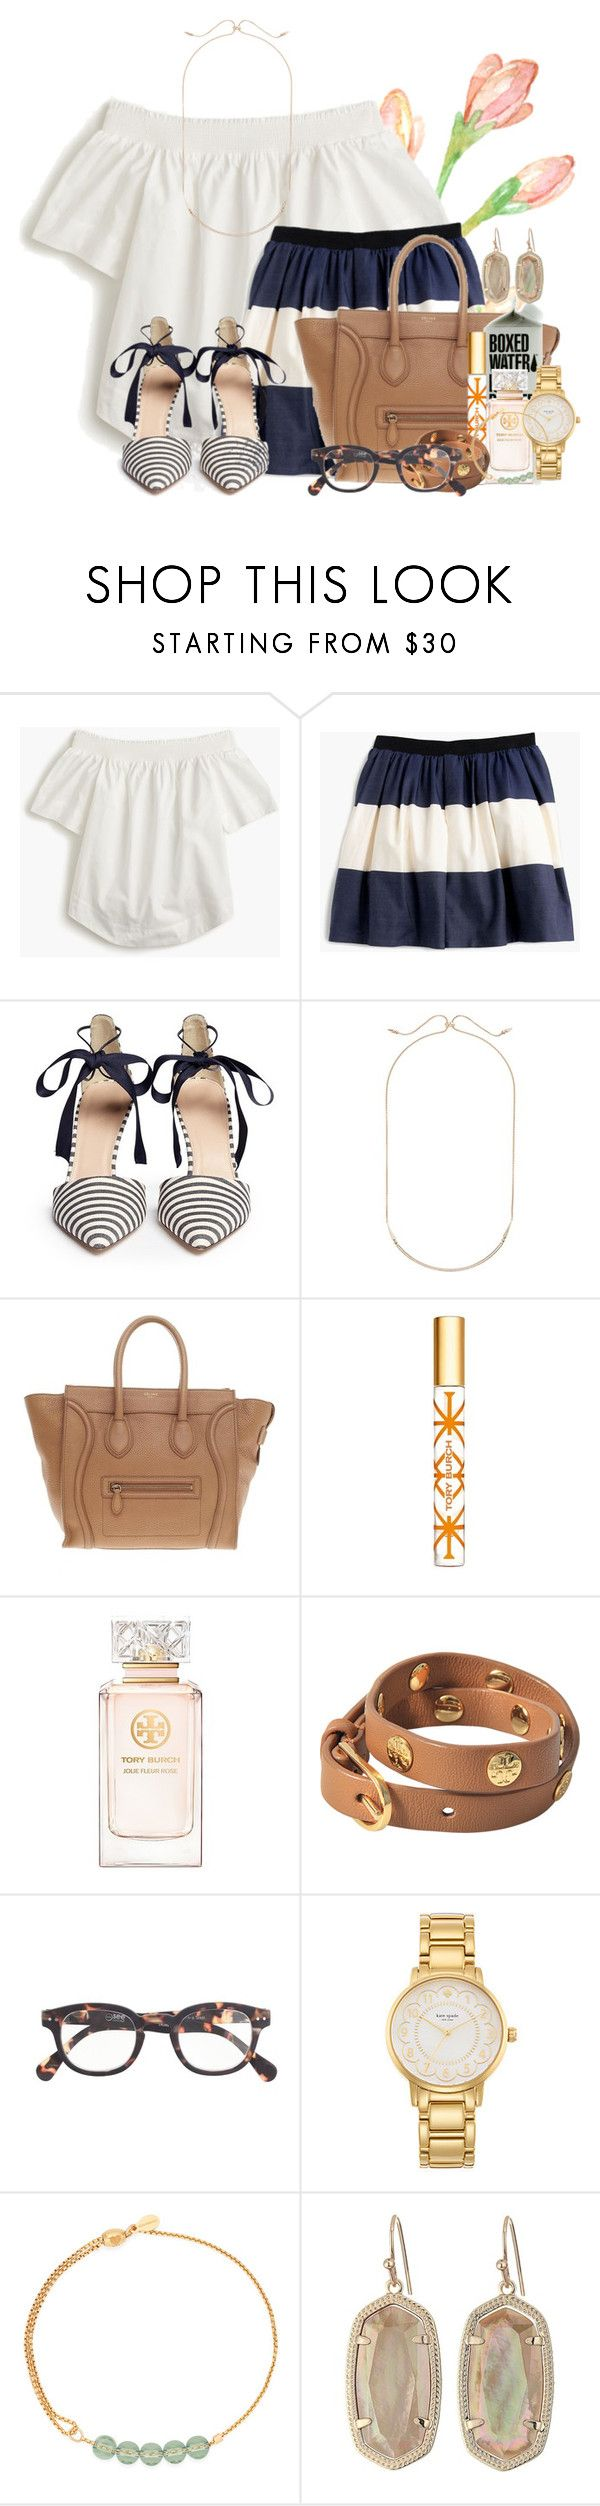 """J is for J crew"" by flroasburn ❤ liked on Polyvore featuring J.Crew, Kendra Scott, CÉLINE, Tory Burch, Kate Spade and Alex and Ani"